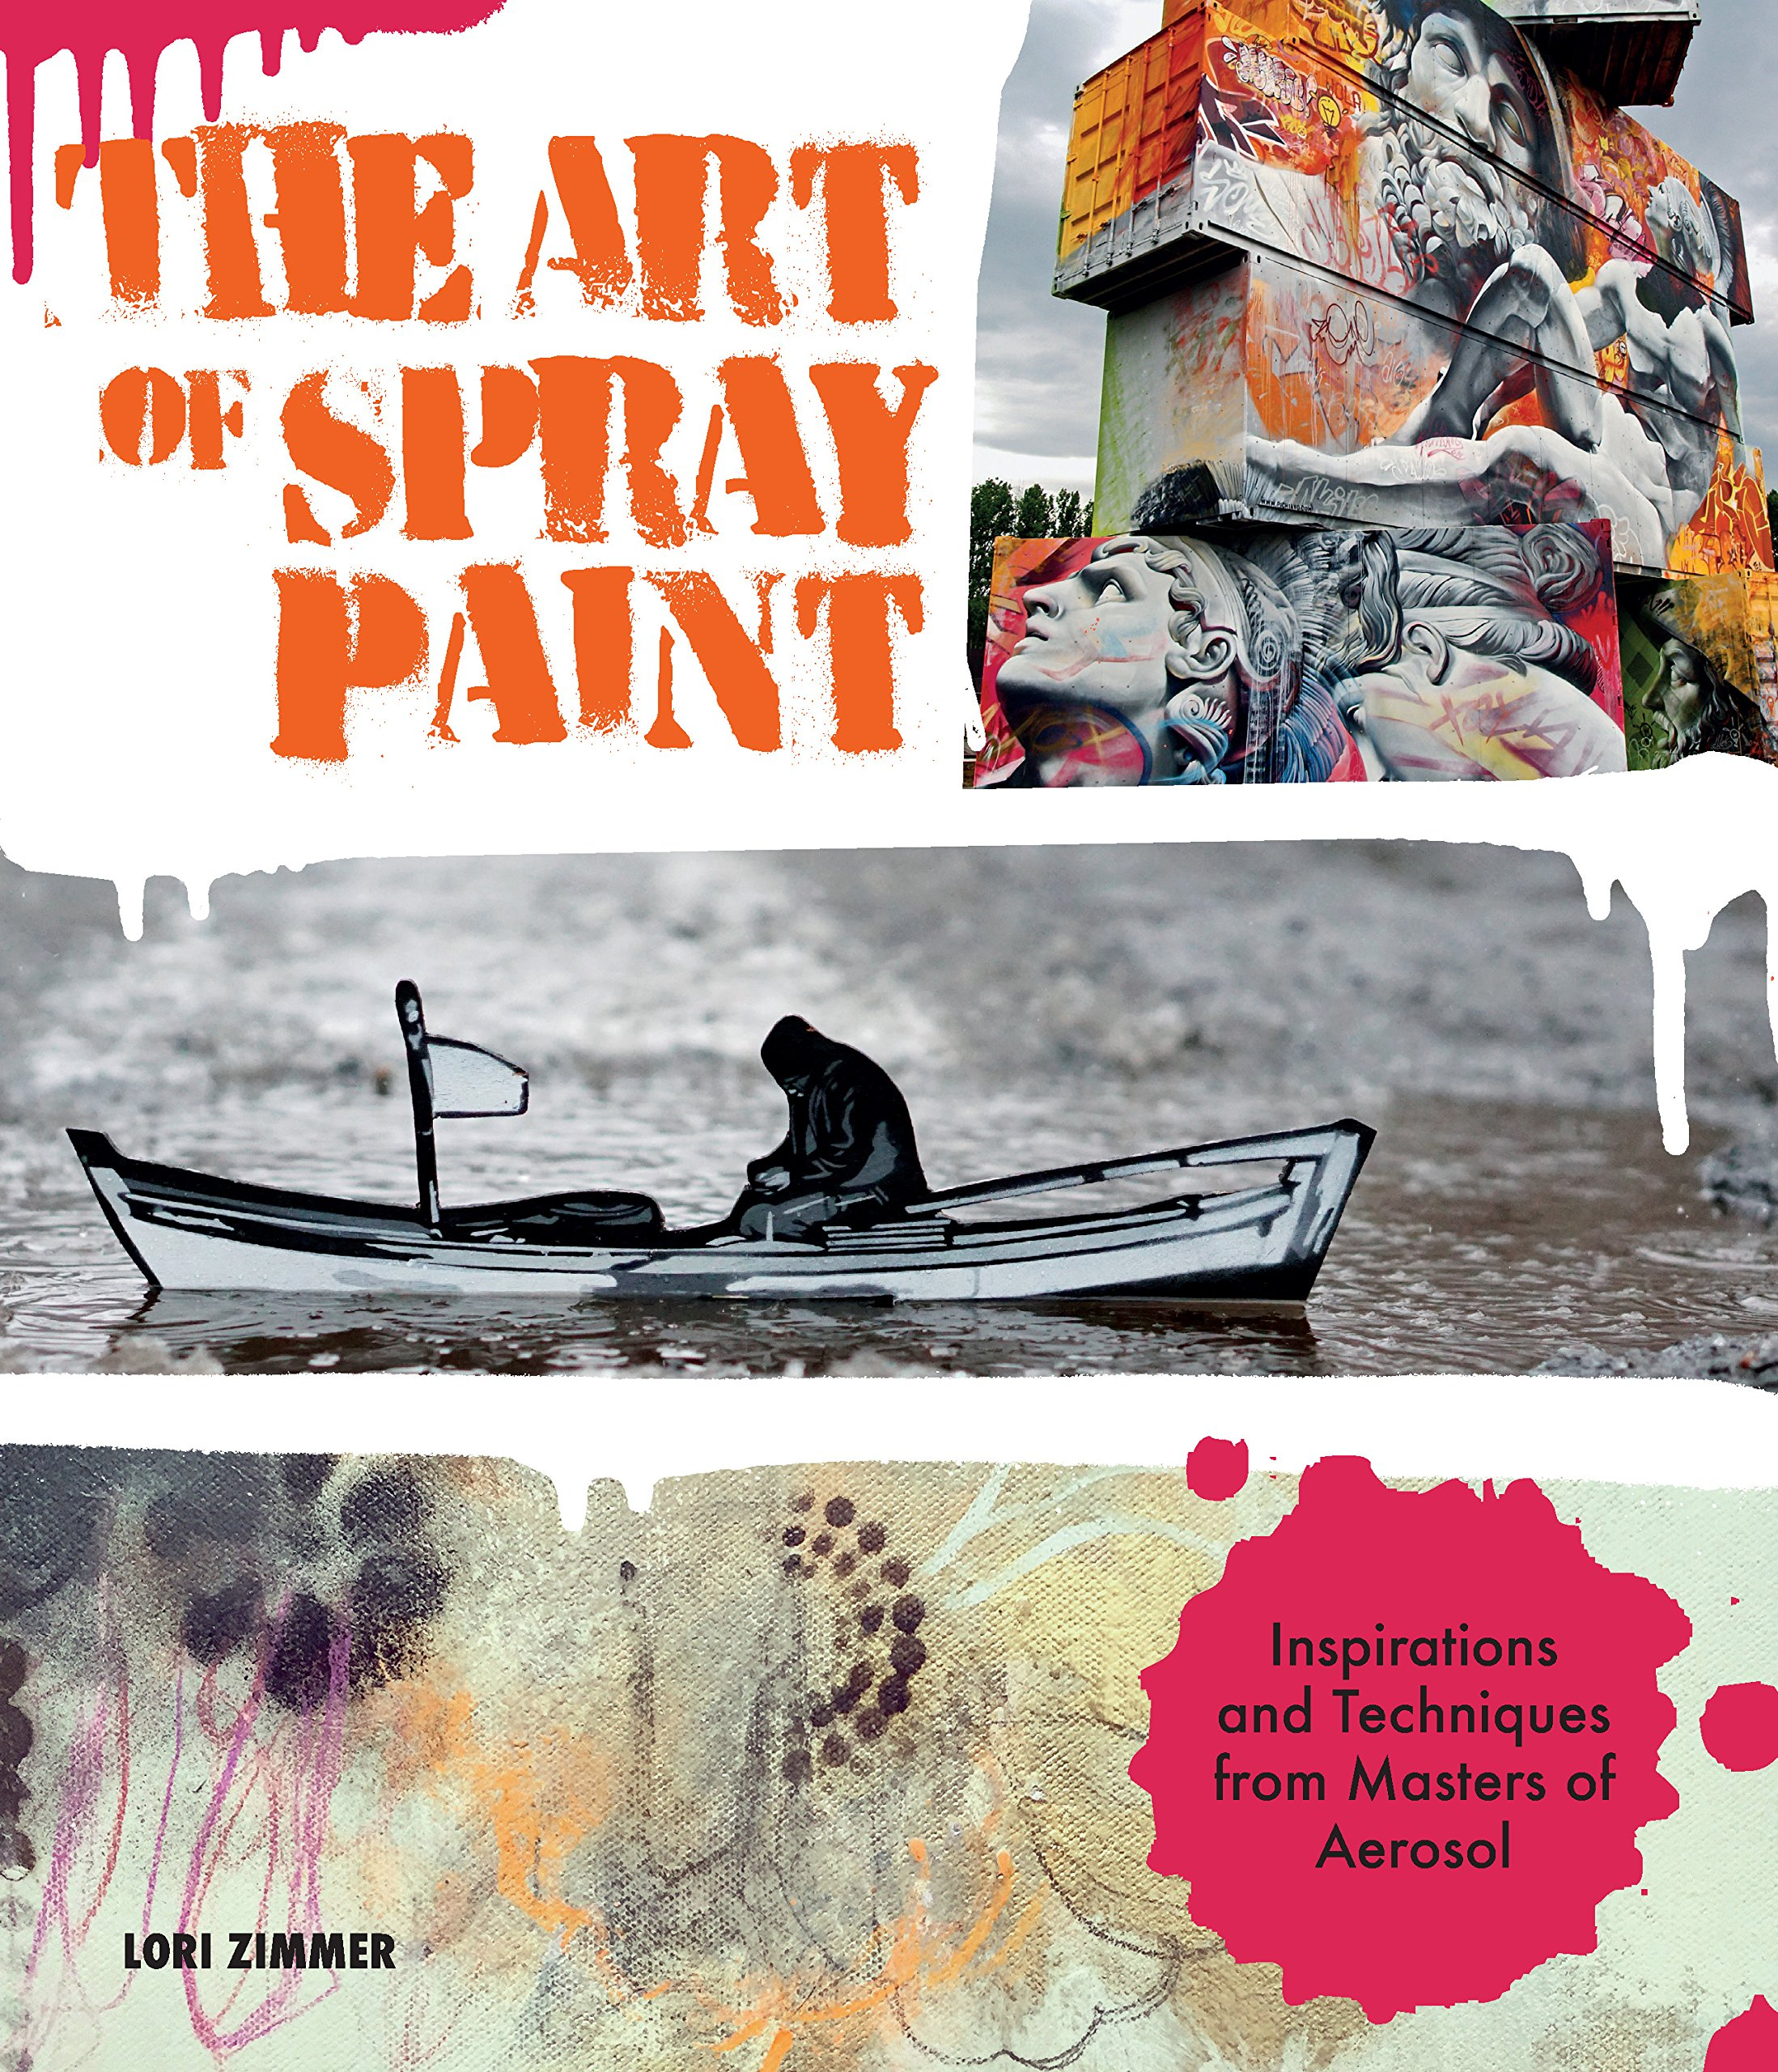 Download The Art of Spray Paint: Inspirations and Techniques from Masters of Aerosol PDF